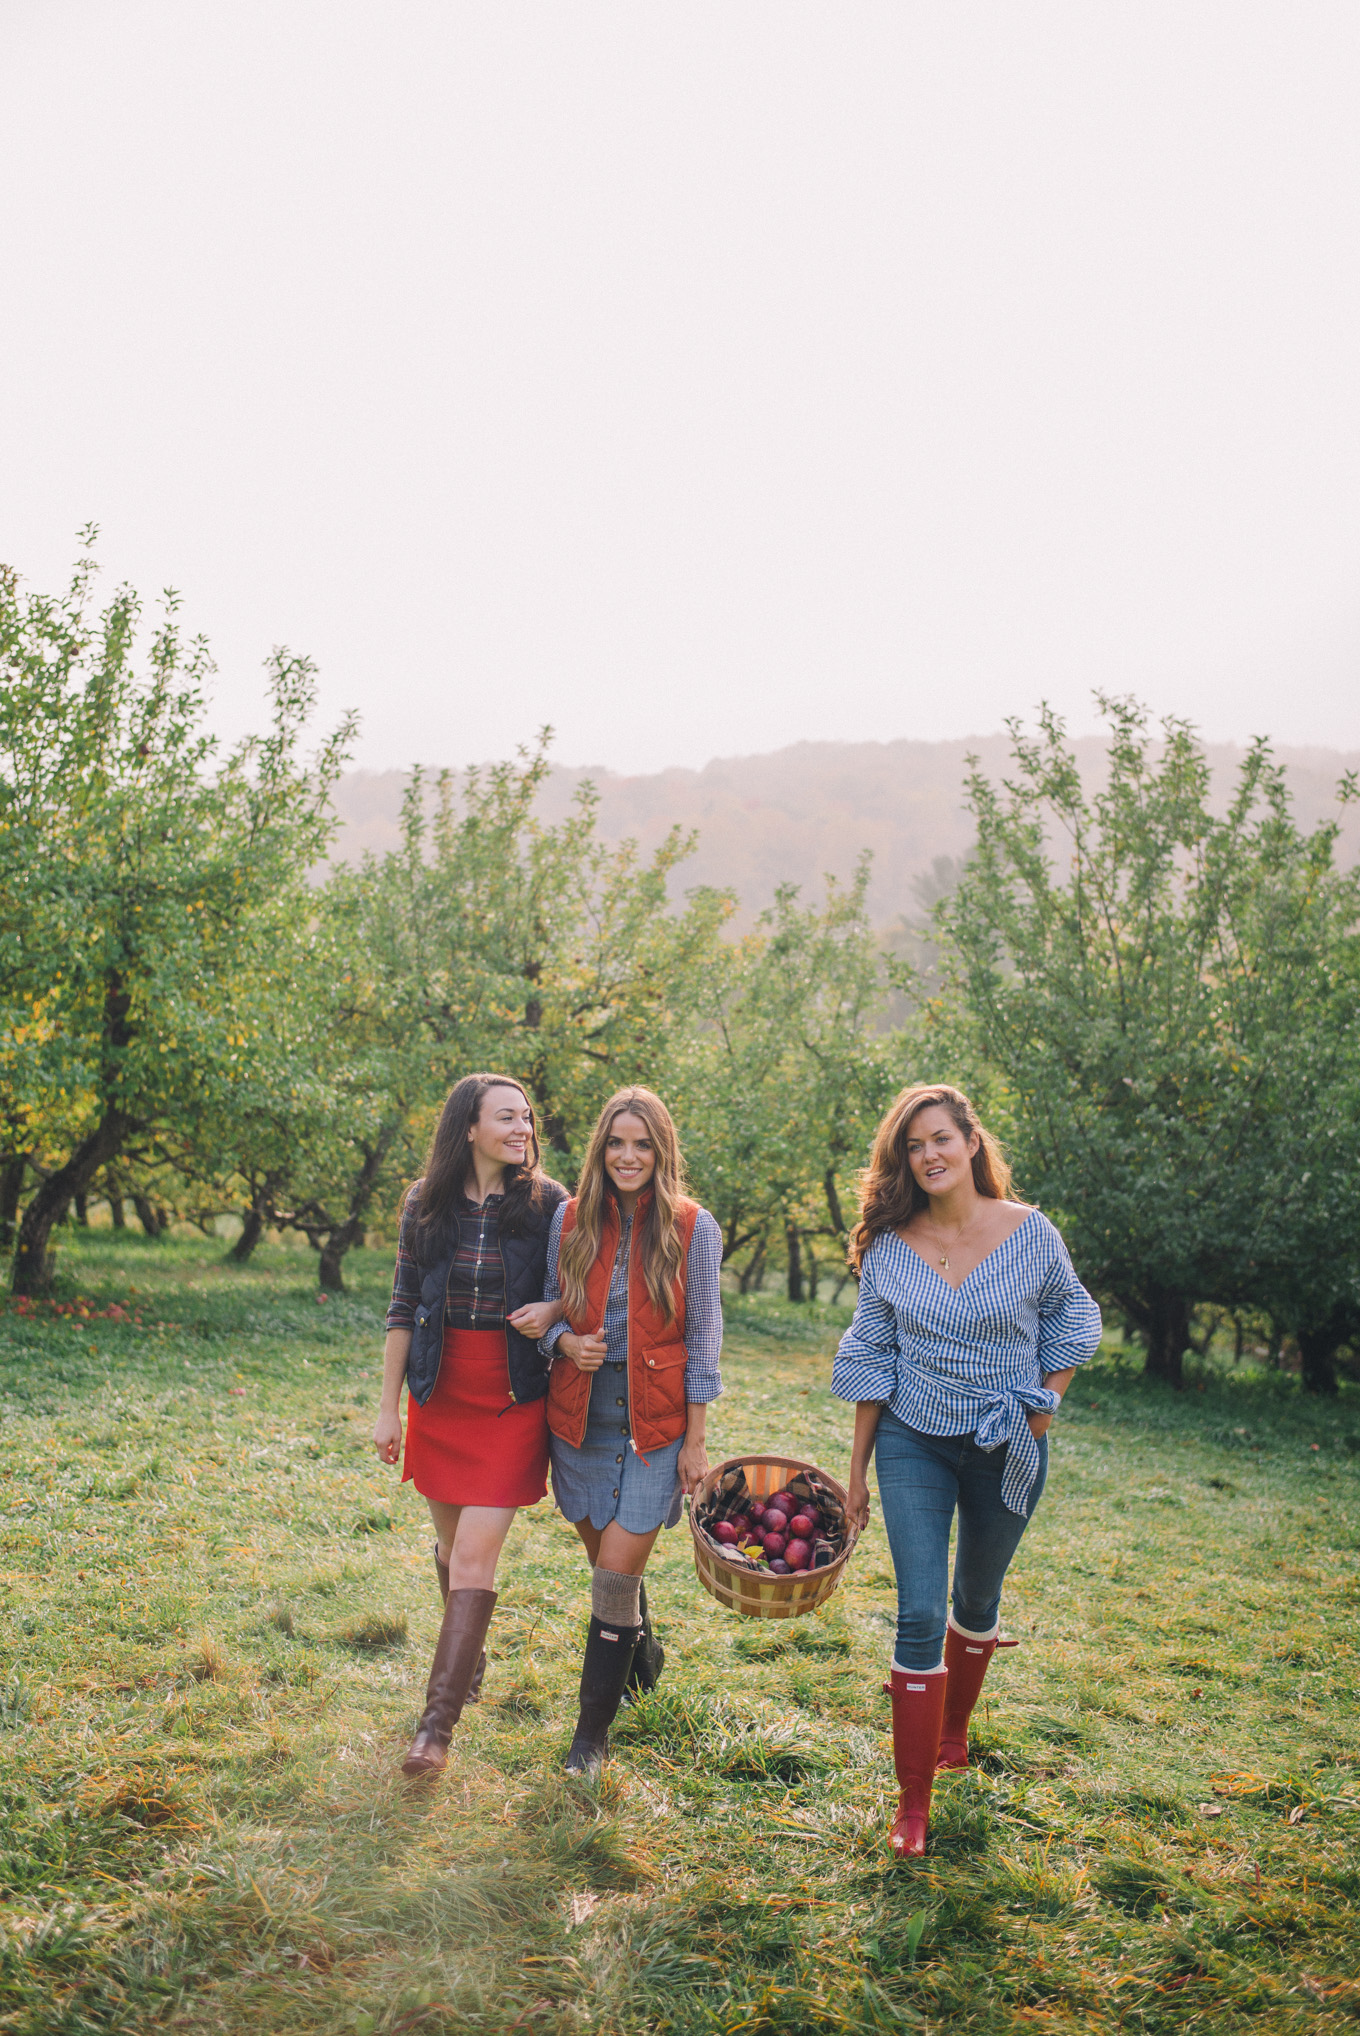 gmg-apple-picking-vermont-fall-1004532